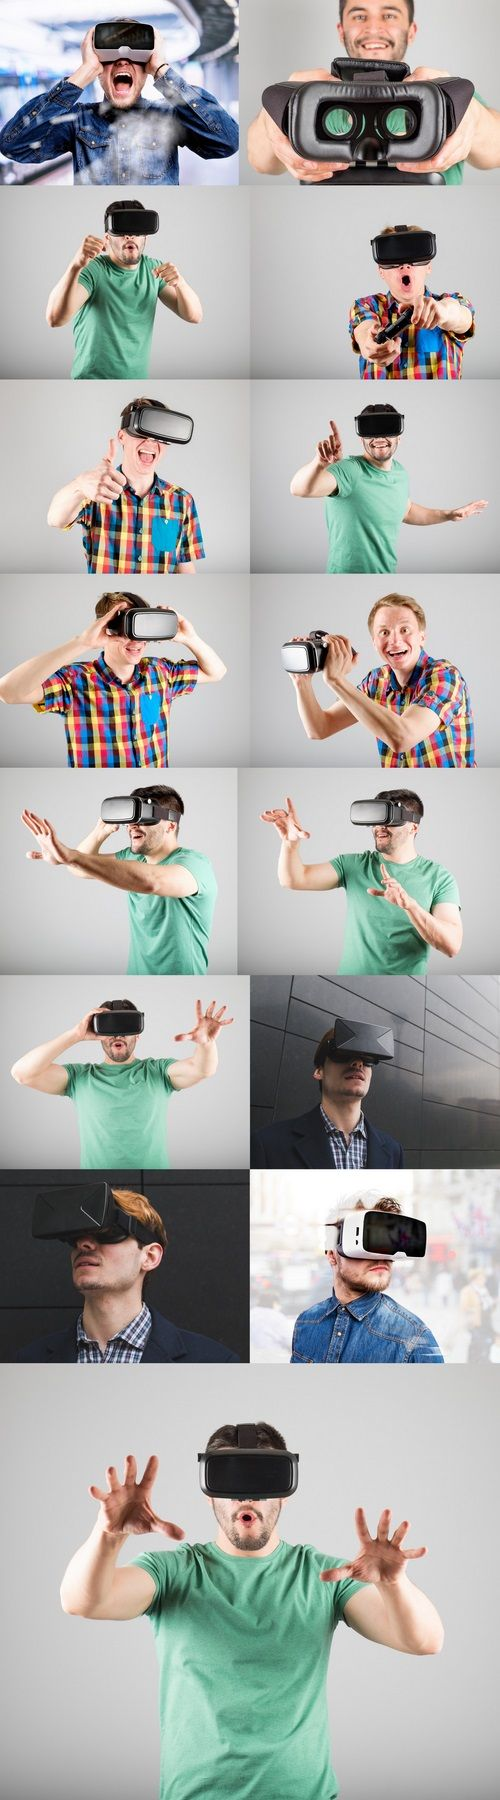 VR goggles transport others into seeing and believing there somewhere they are r...